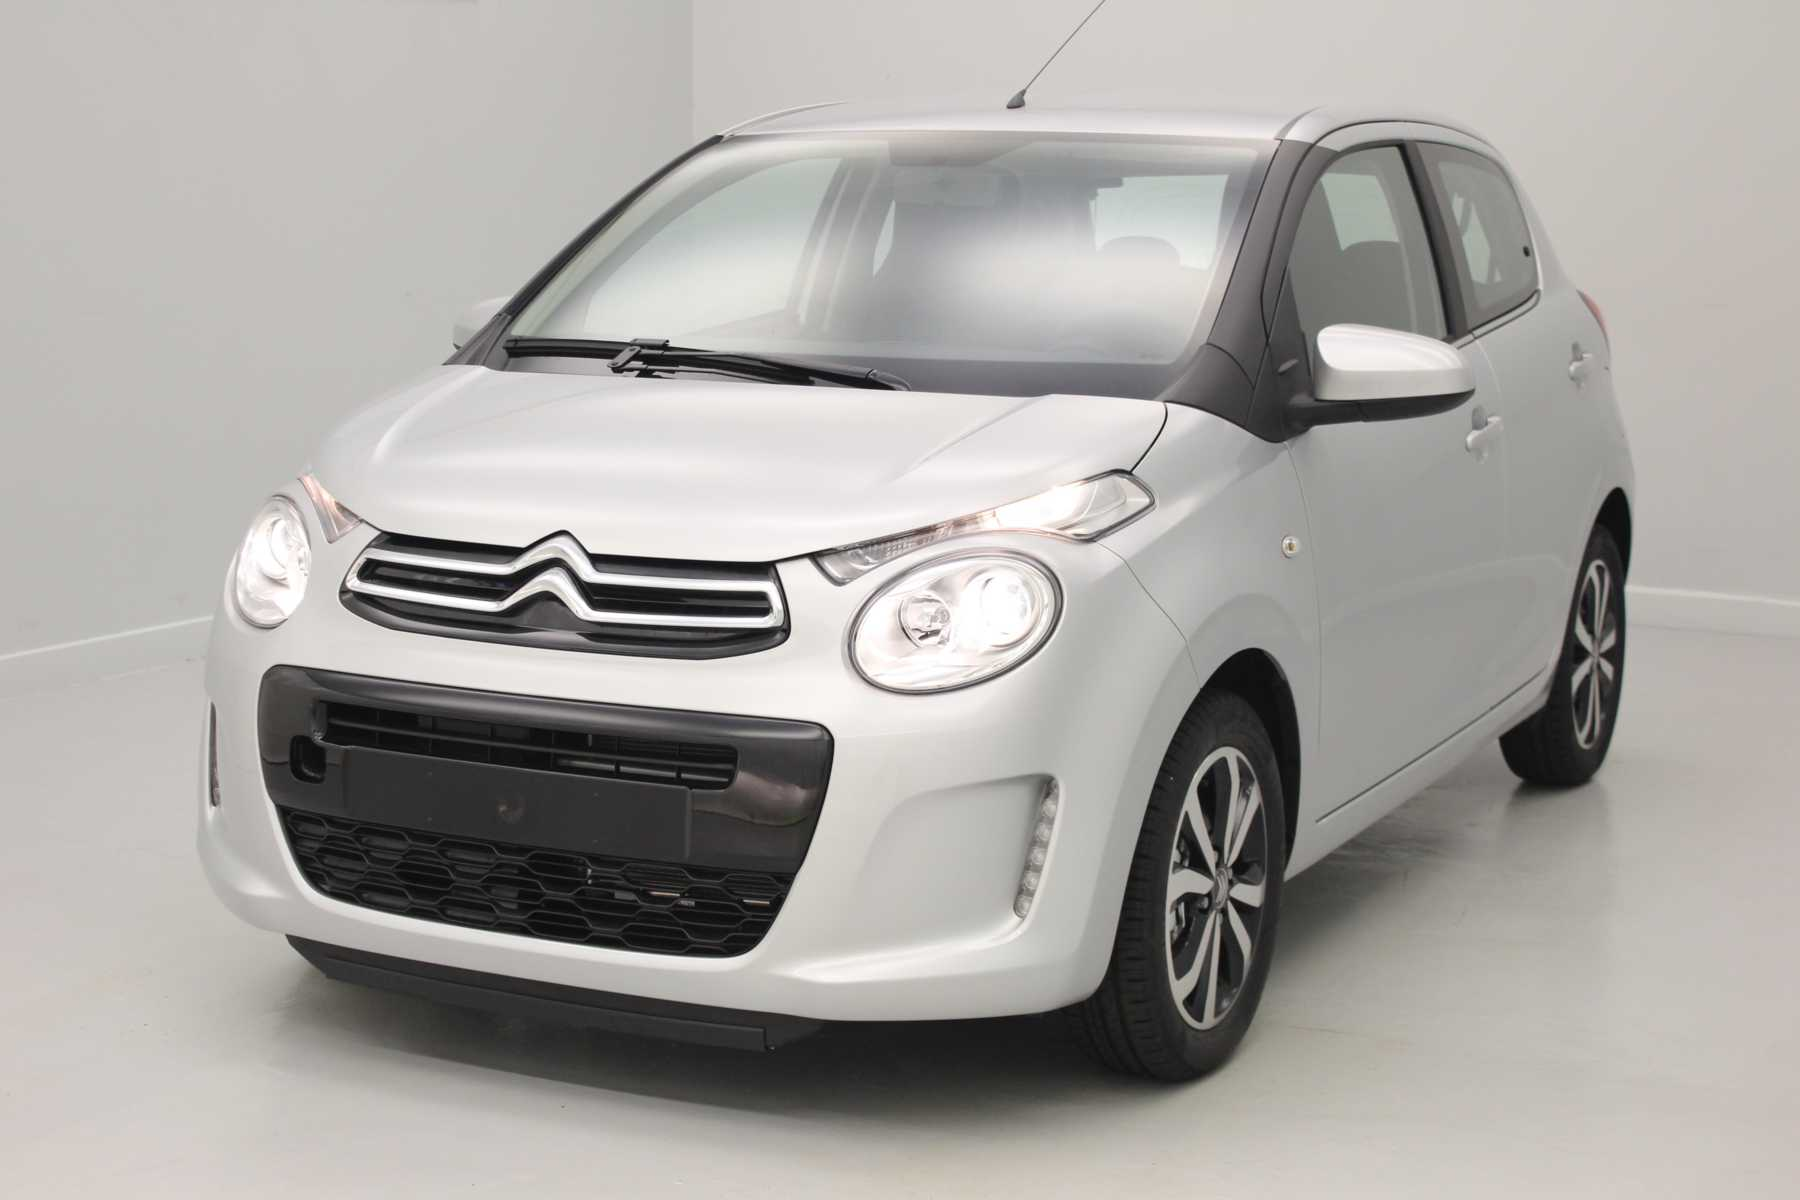 CITROEN C1 PureTech 82 Shine Gris Gallium + Climatisation Automatique avec options